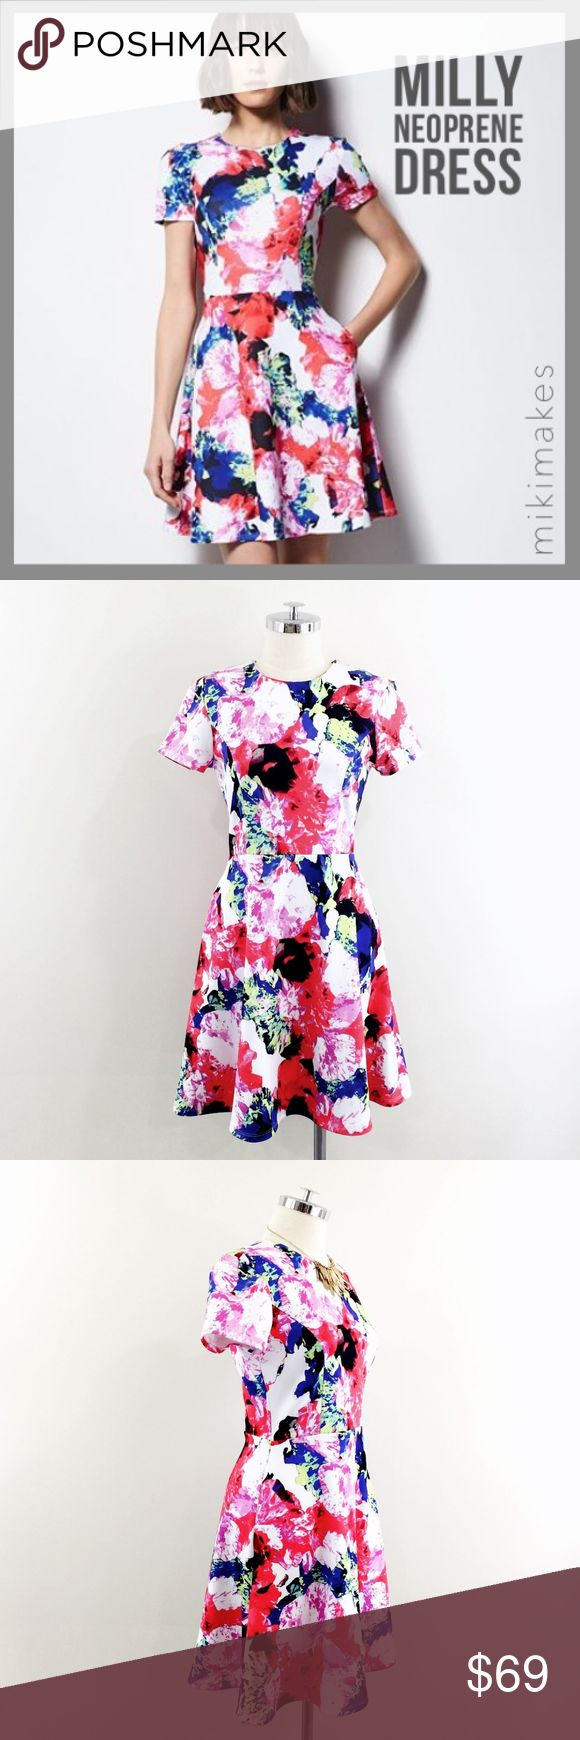 "🆕 MILLY • NWT neoprene fit & flare floral dress • Brand new with tags dress from Milly for Design Nation • neoprene fabric • abstract graphic floral print • short sleeves • fit & flare style • exposed black metal zipper at the back  92% polyester 8% spandex  ✂️  Bust = 38"" ✂️  Waist = 32"" ✂️  Shoulder = 16"" ✂️  Length = 39""  • sorry no trades • please feel free to ask any questions  ❤️,  @mikimakes  062917.bin8.69 Milly Dresses Mini"